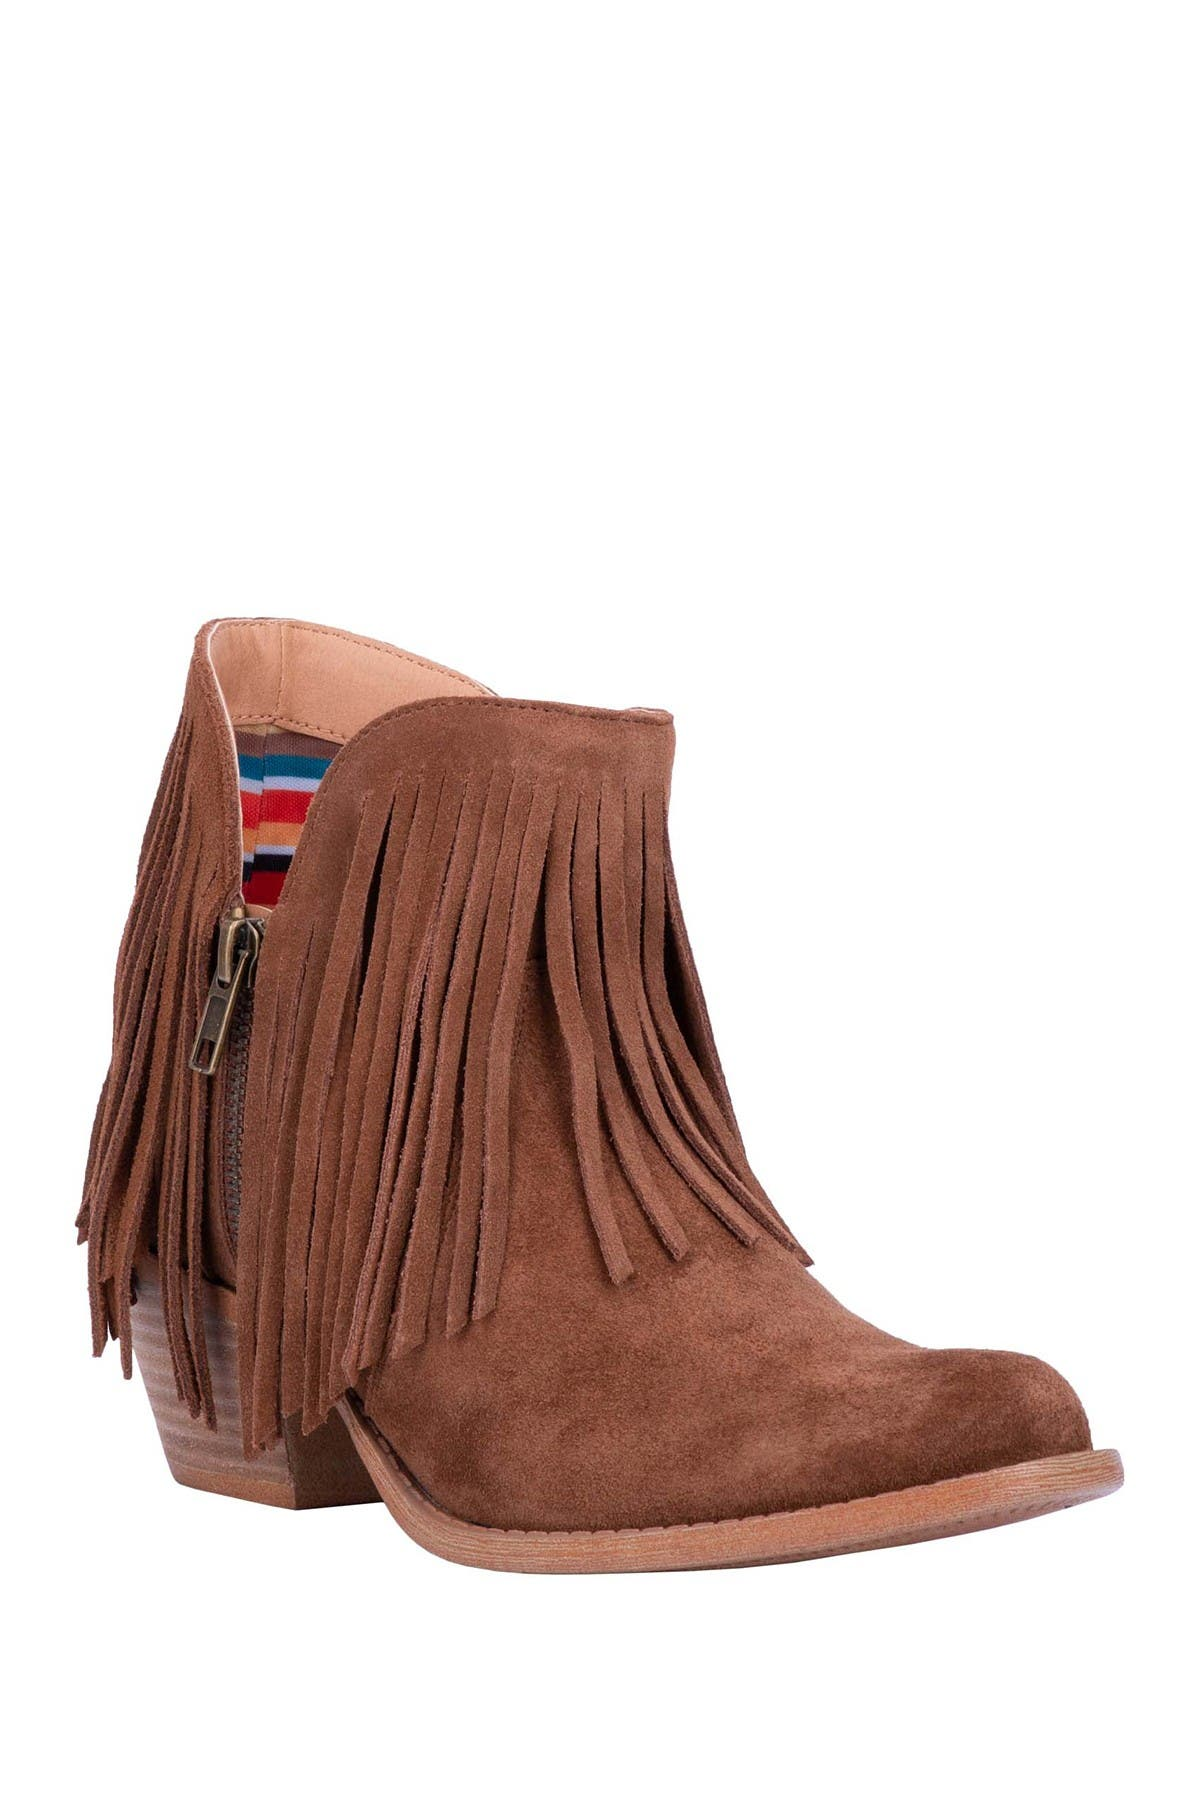 Image of DINGO Jerico Fringe Boot